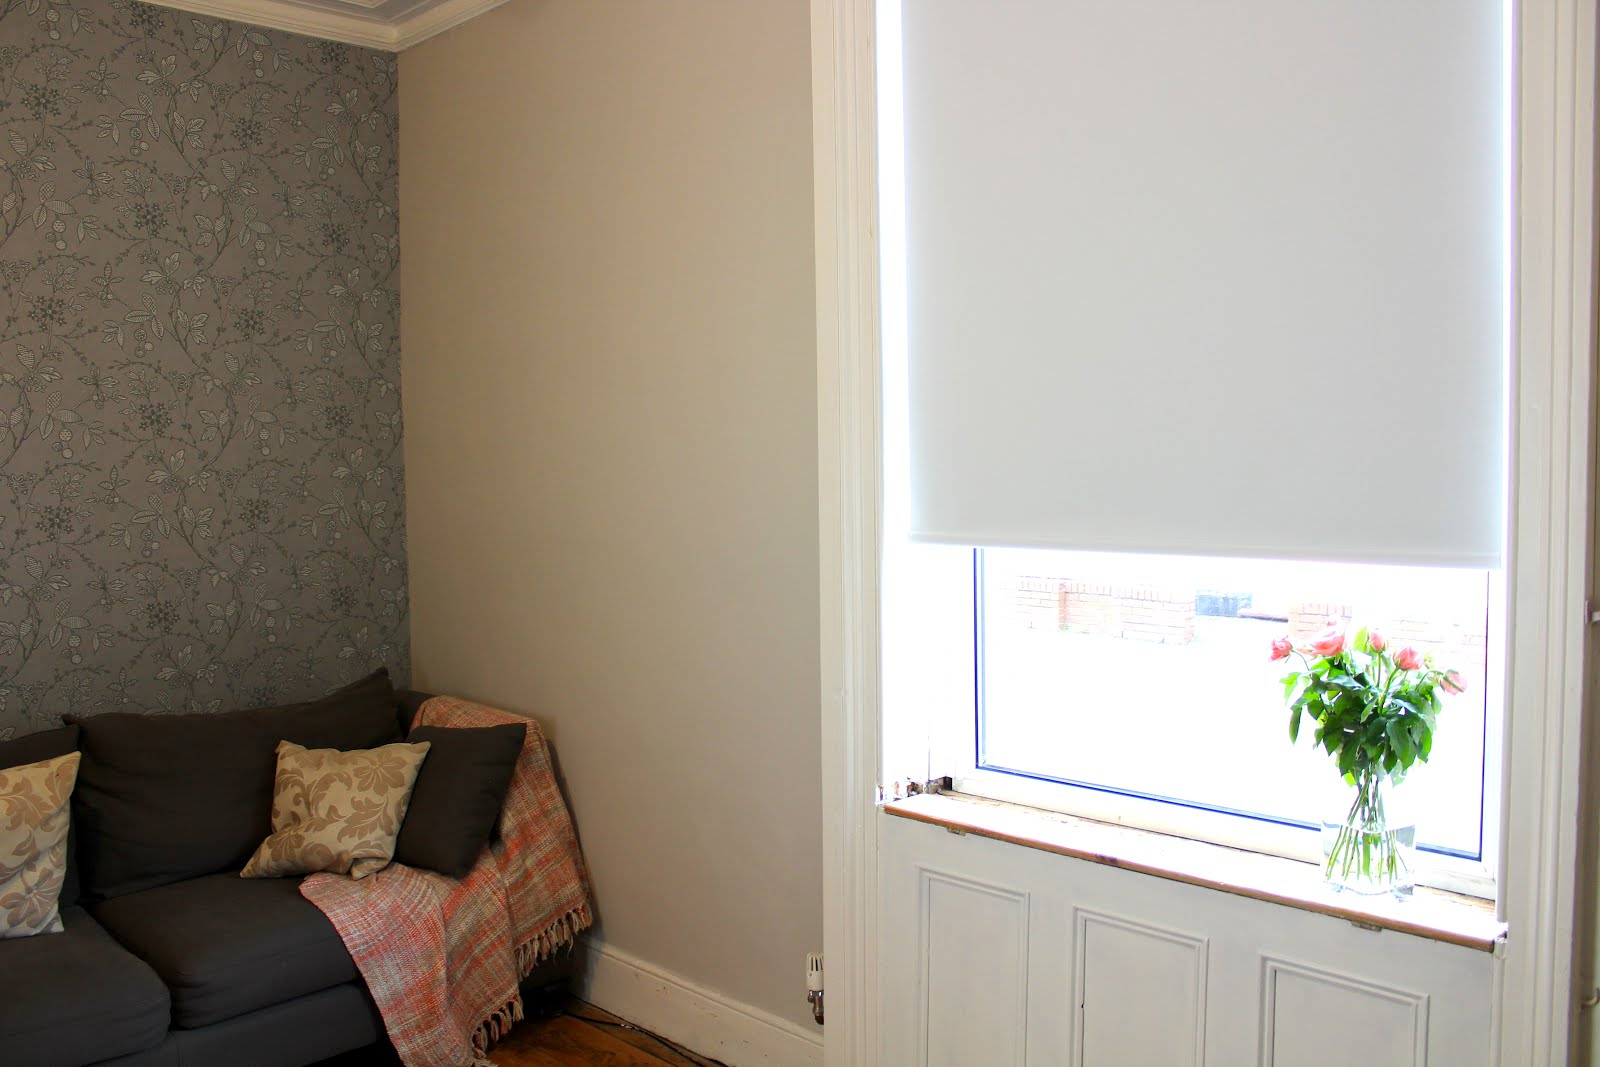 Somfy Electric Roller Blind Review